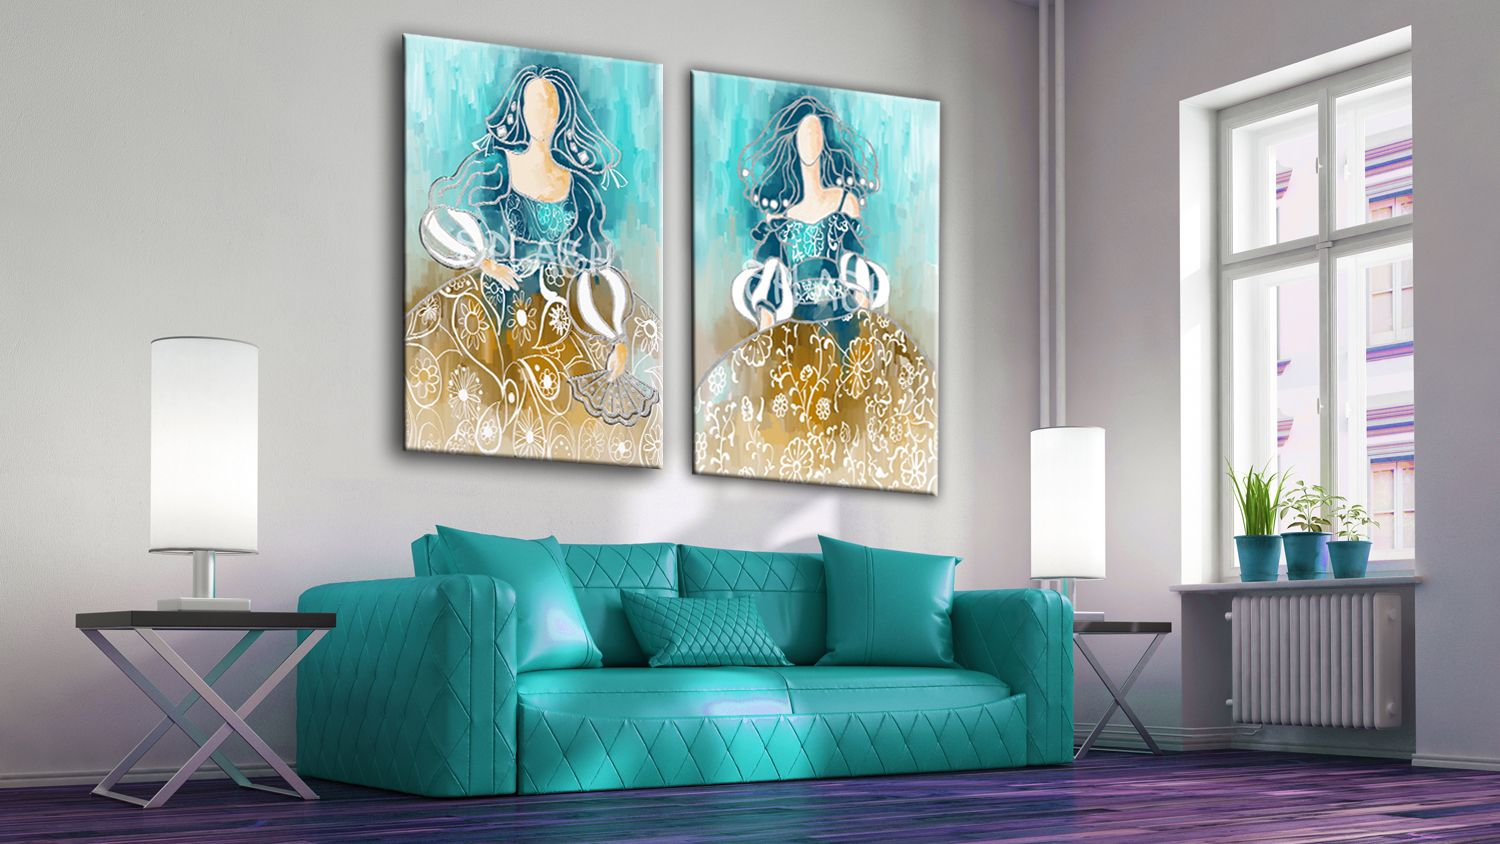 Cuadros Abstractos Baratos Online Pin De Jhon P En Hogar En 2019 Ideas Home Decor Y House